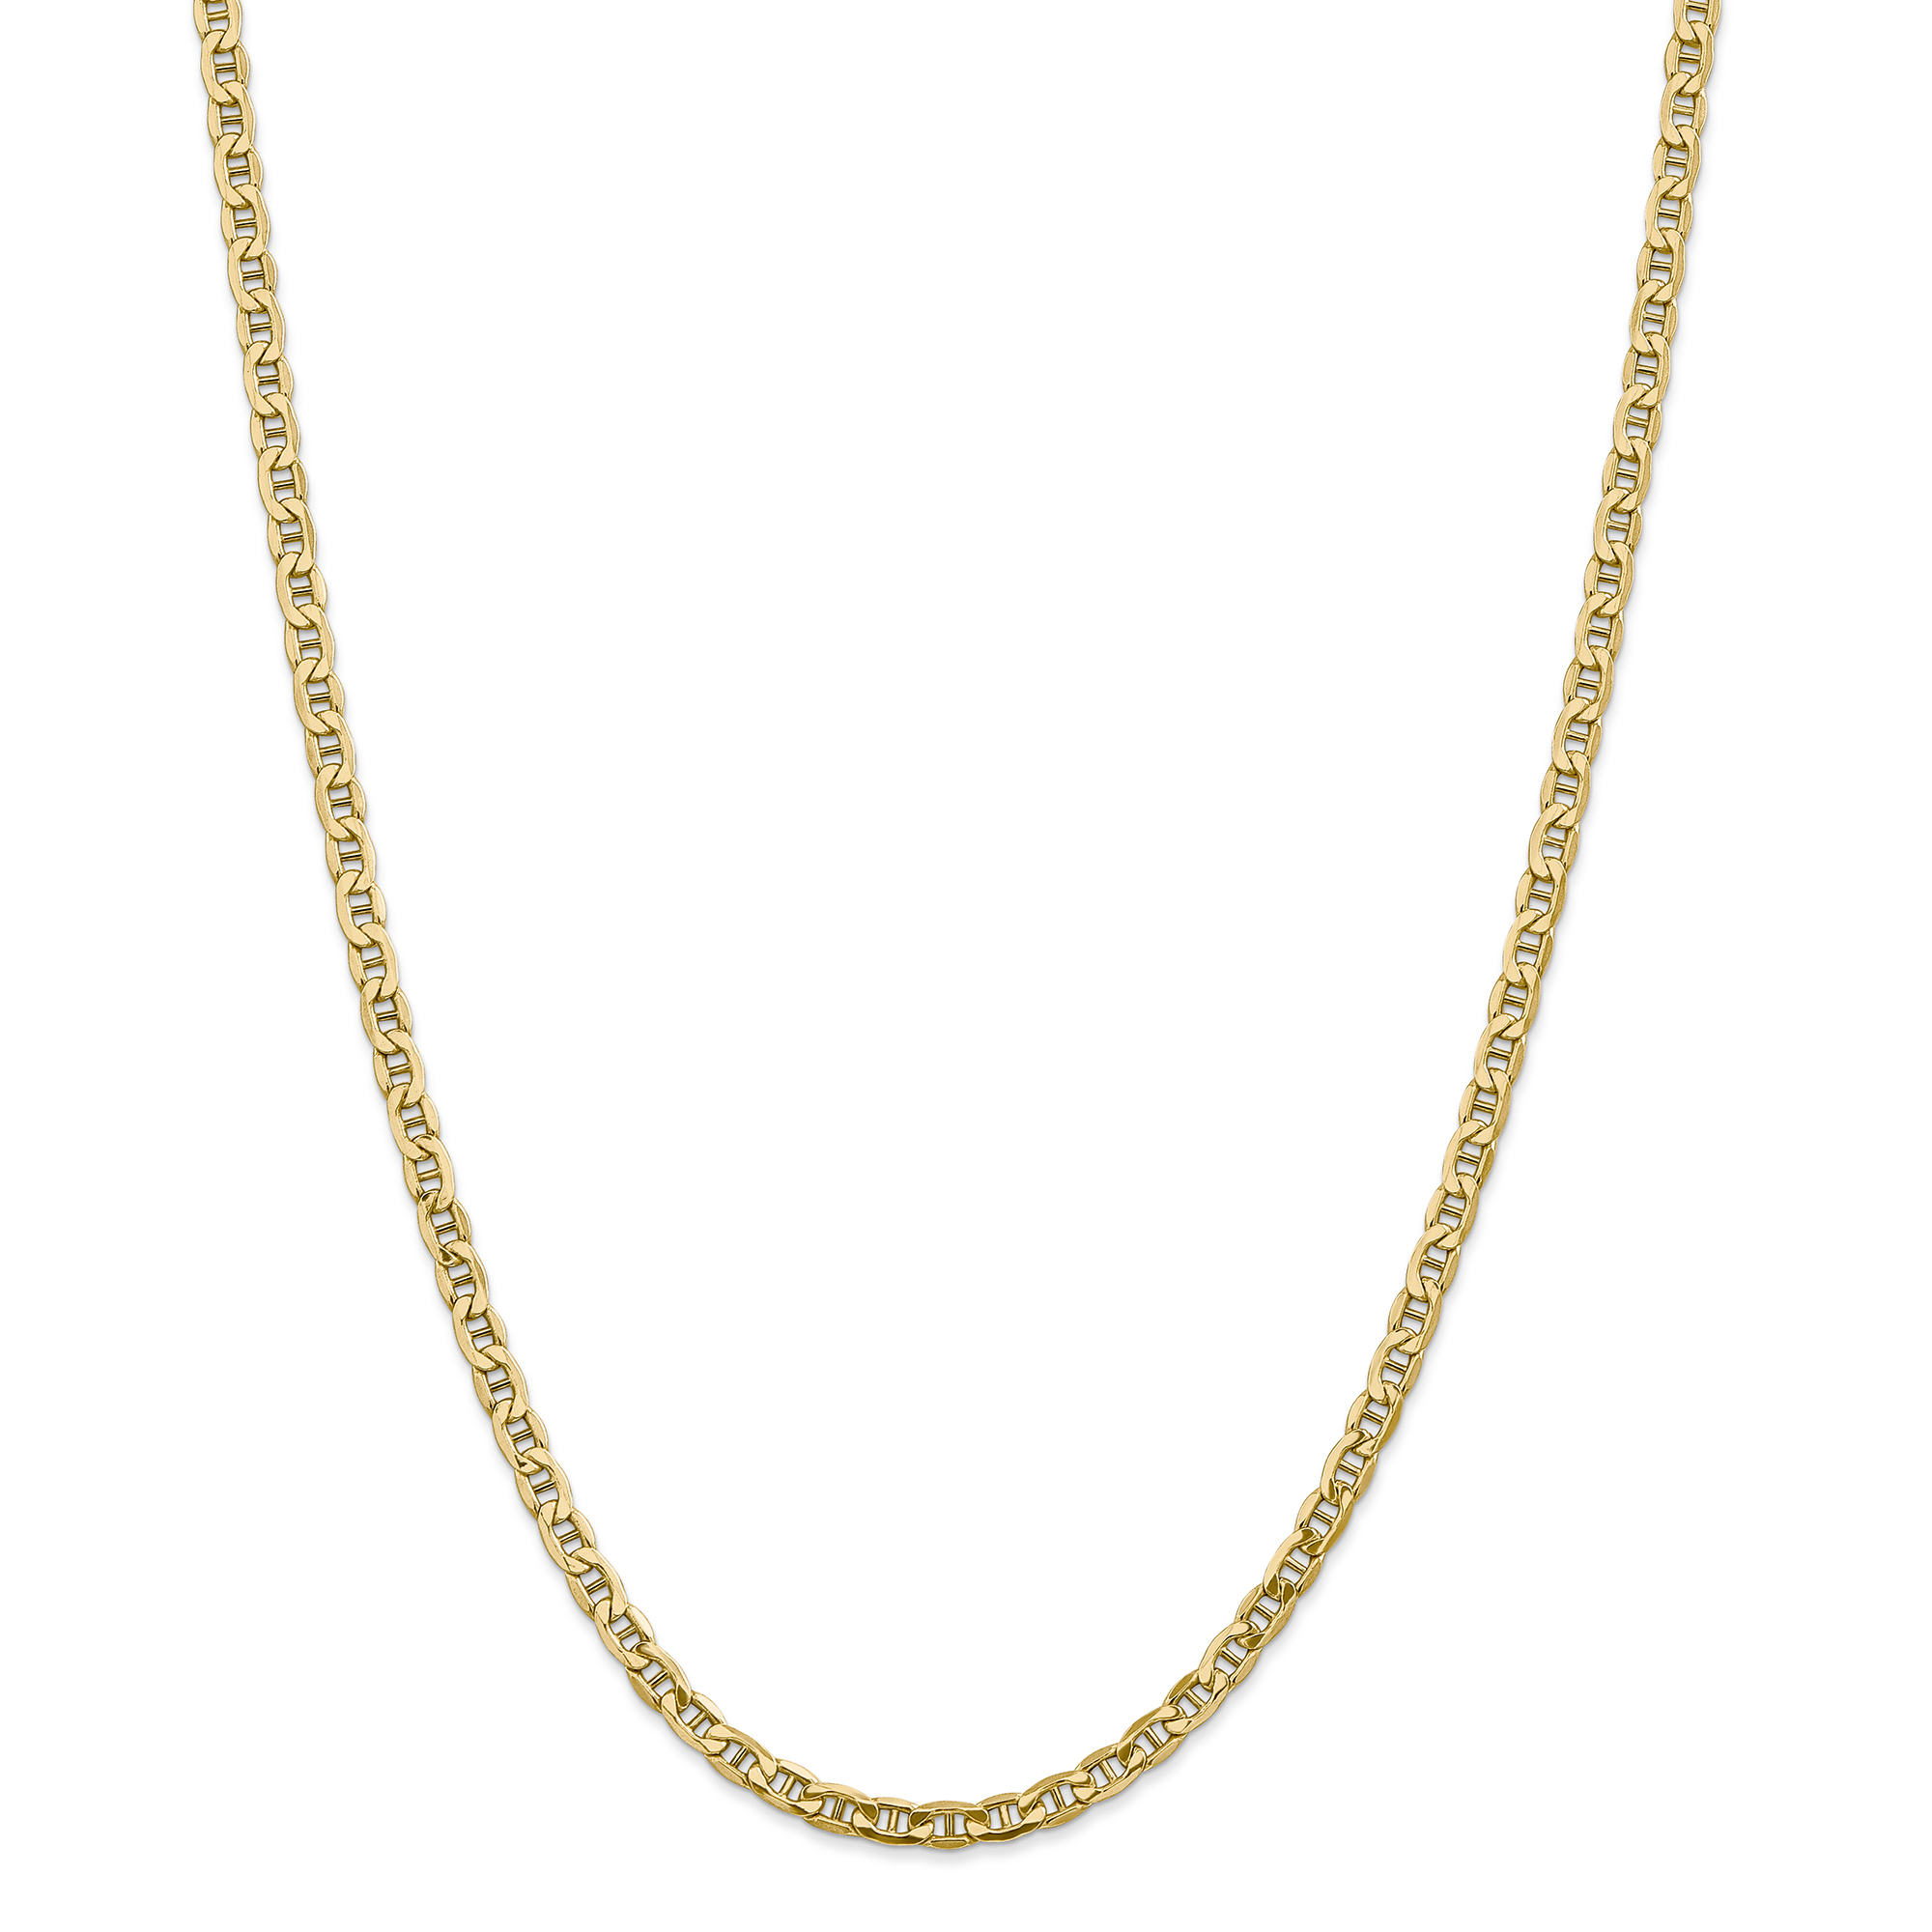 ICE CARATS 14kt Yellow Gold 4.1mm Link Anchor Chain Necklace 16 Inch Pendant Charm Fine Jewelry Ideal Gifts For Women... by IceCarats Designer Jewelry Gift USA